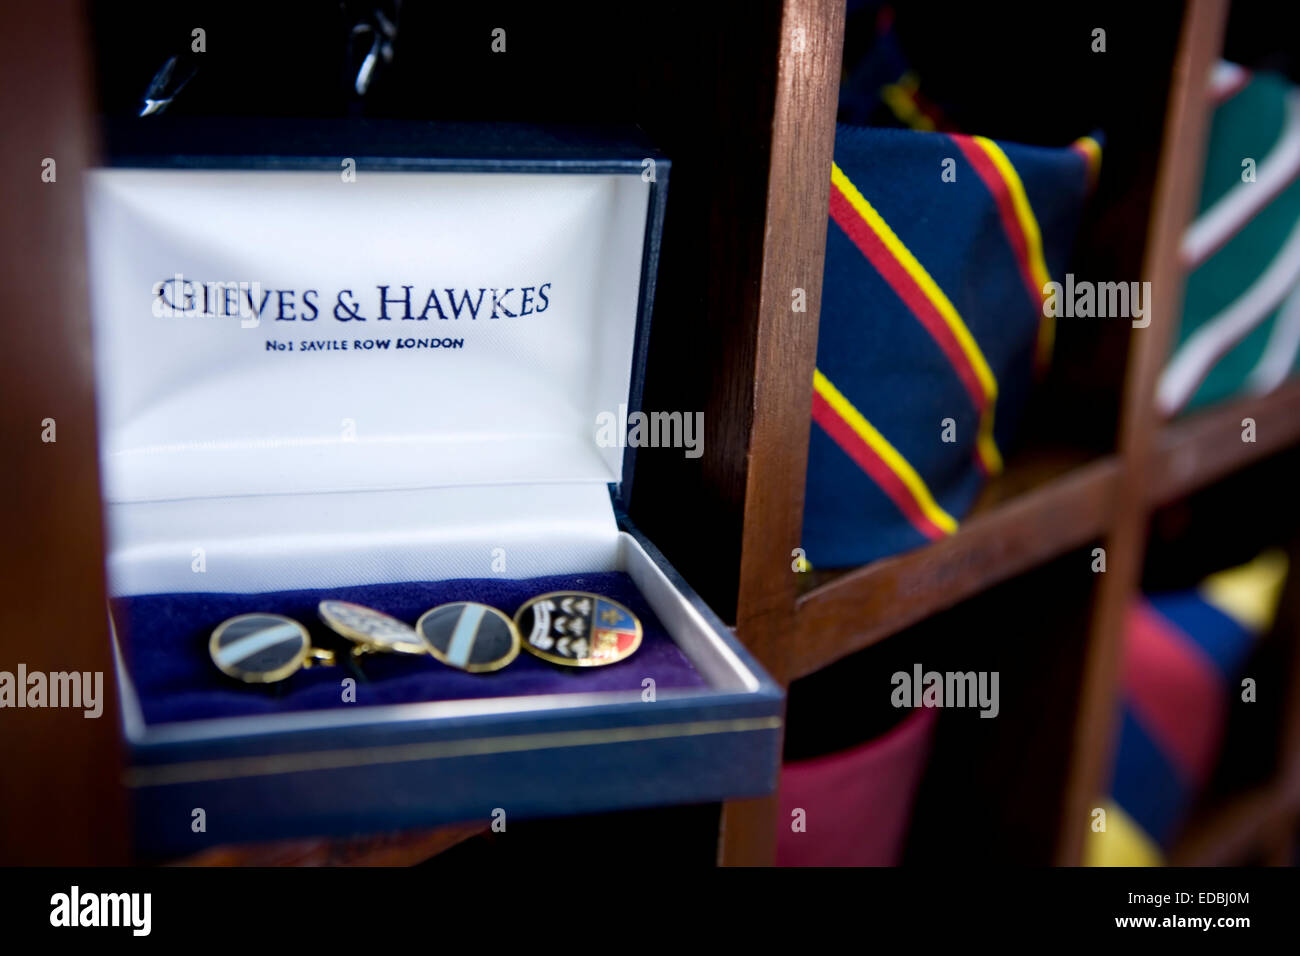 Close-up picture of accesories and ties in the flagship Gieves & Hawkes store on Savile Row, London. - Stock Image